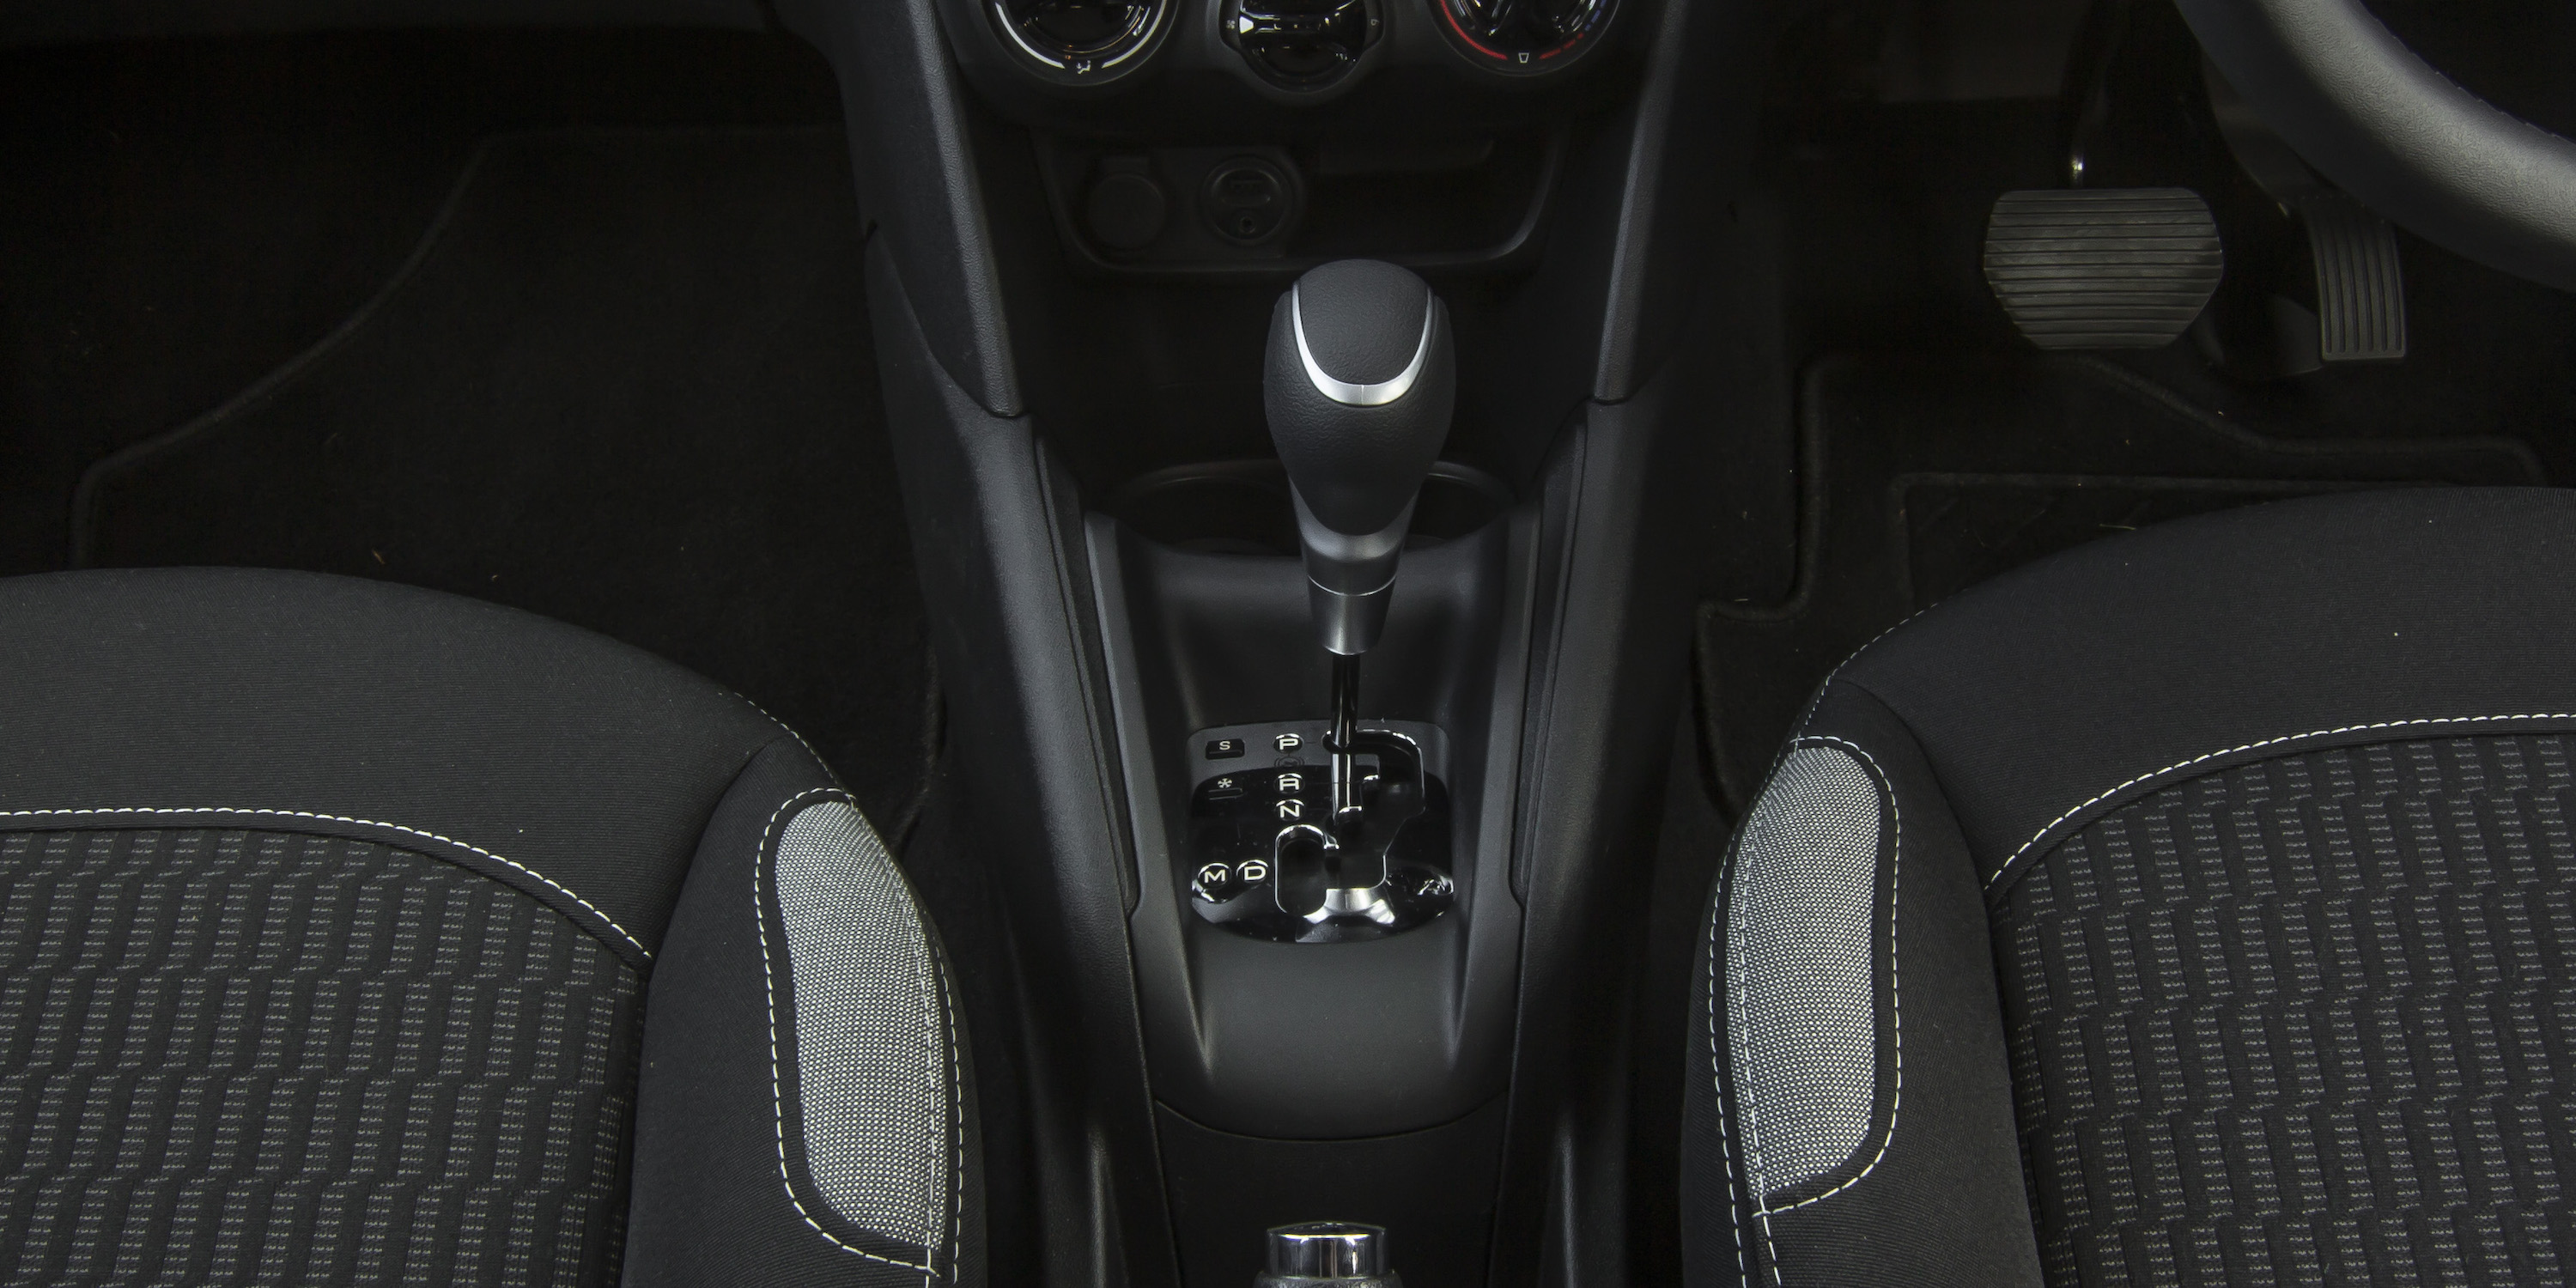 2016 Peugeot 208 Active Gear Shift Knob